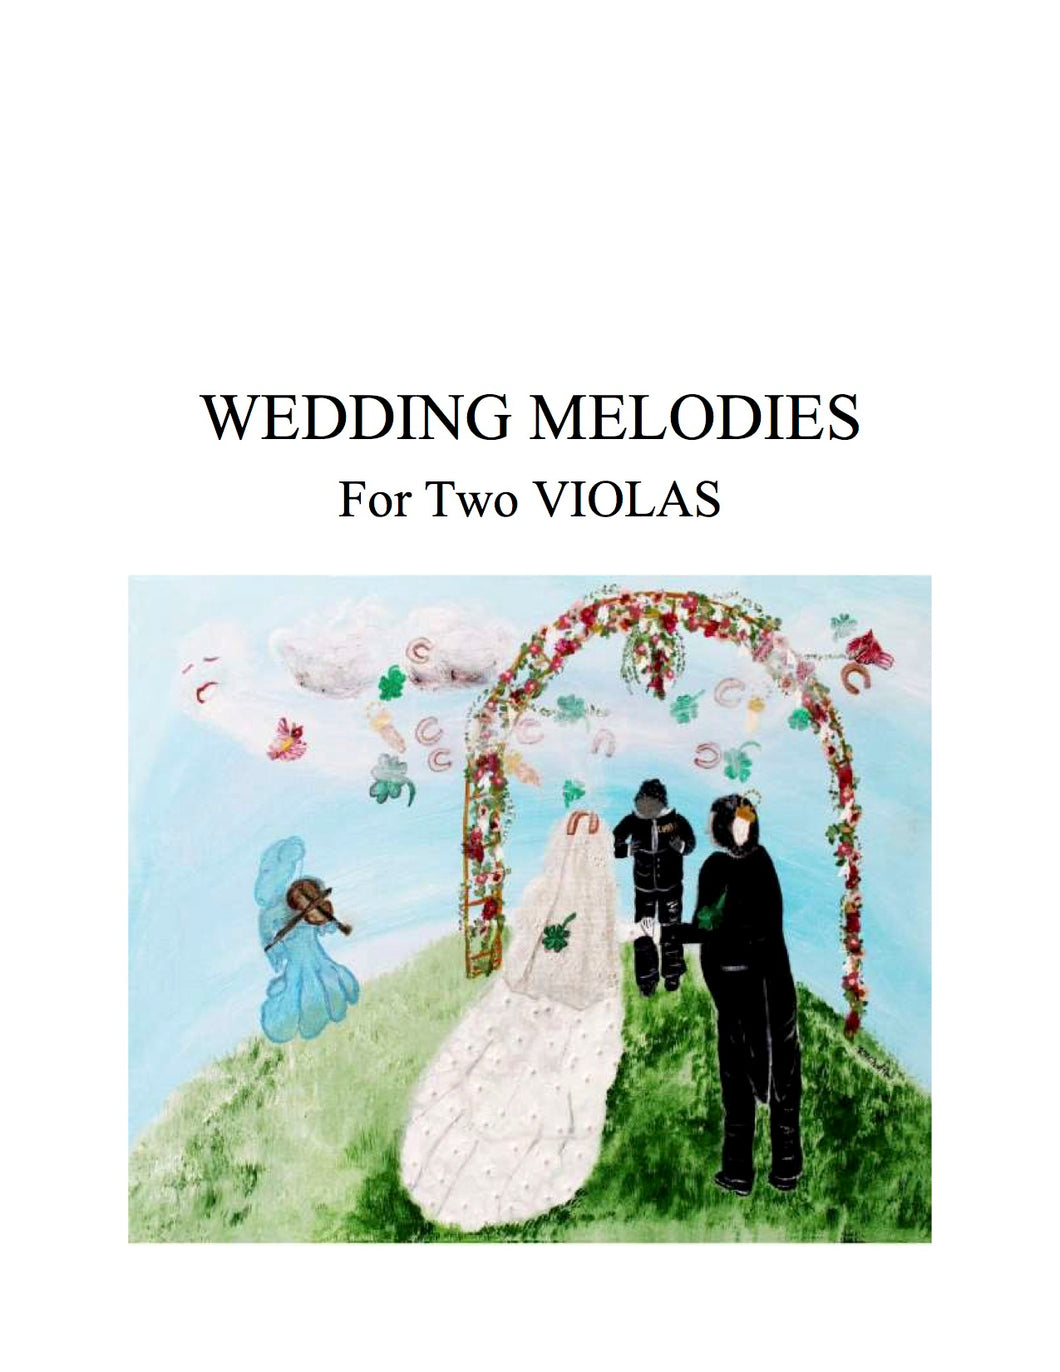 050 - Wedding Melodies for Two Violas